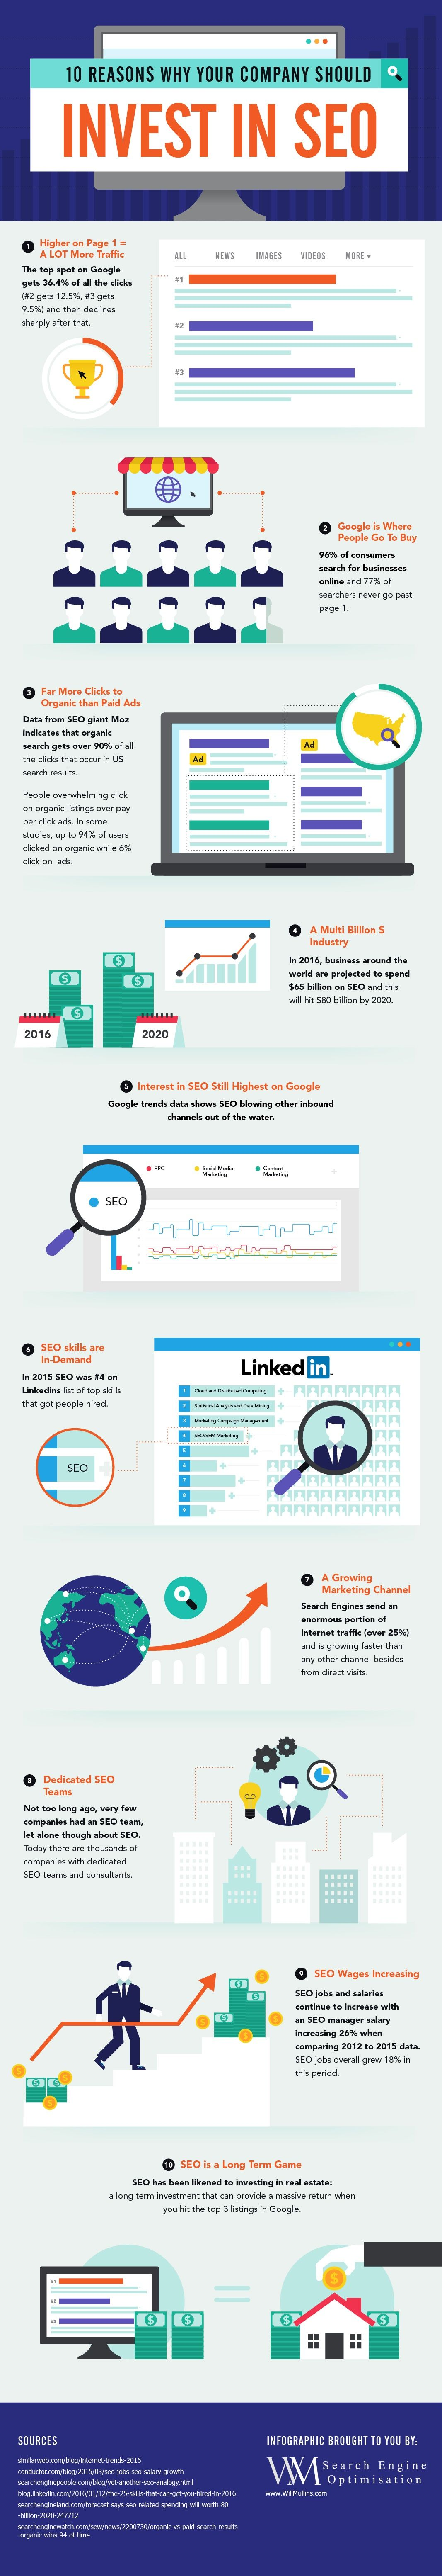 10 Reasons Why Your Company Should Invest In SEO #Infographic